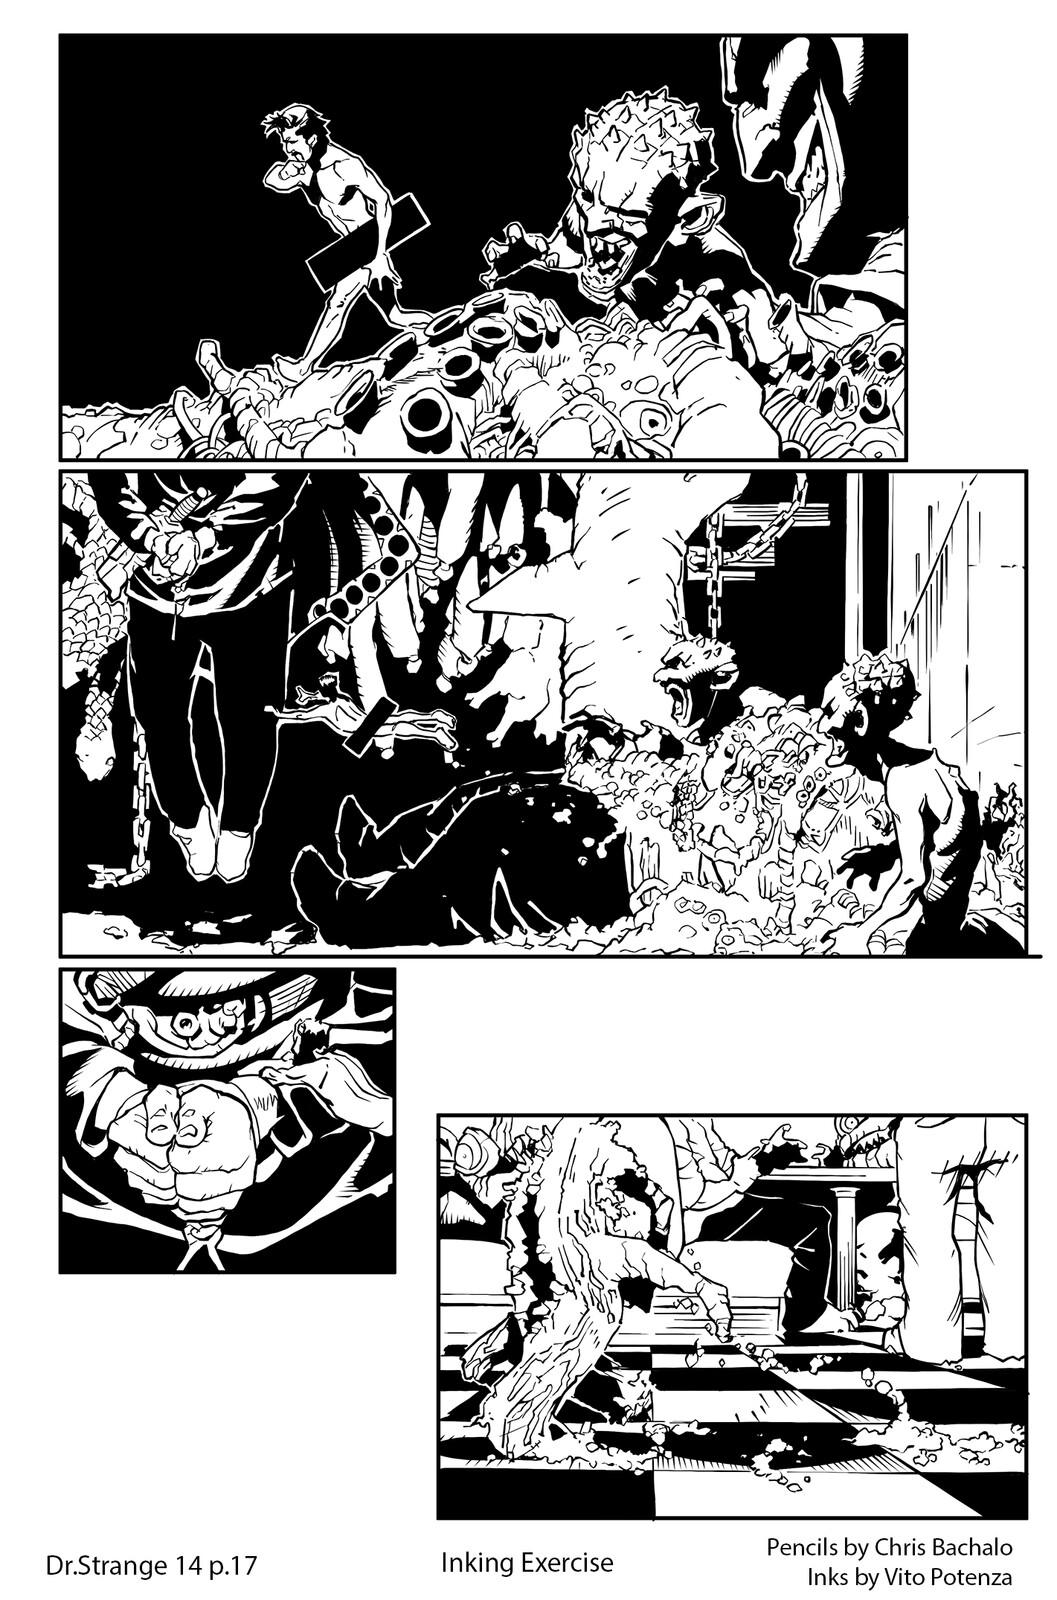 Dr.Strange #14 - page 17 Pencils by Chris Bachalo | Inking by me